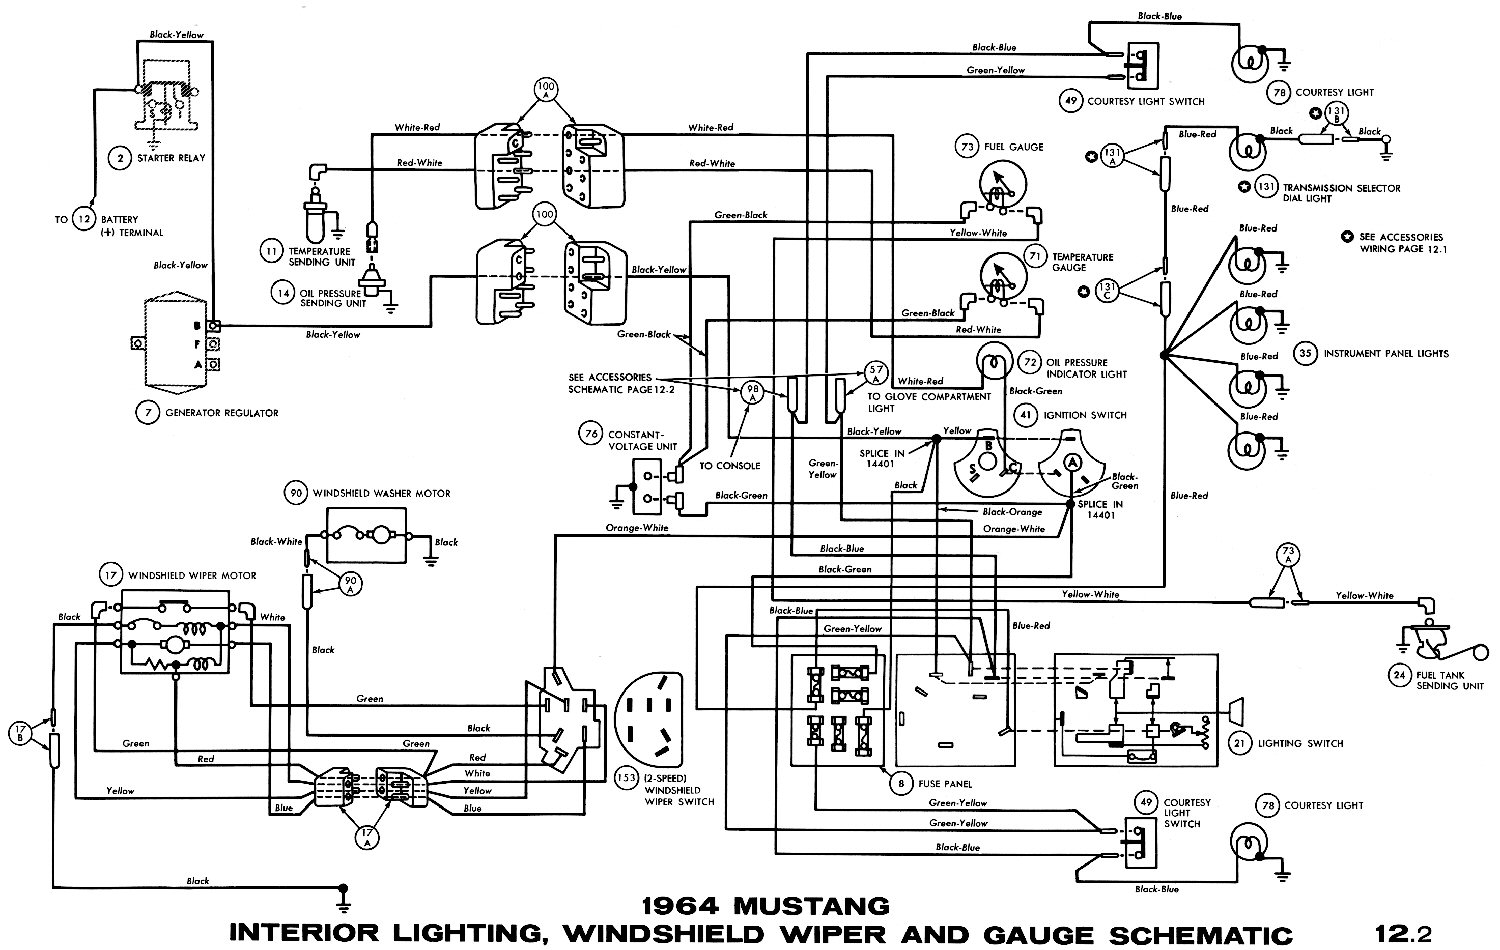 1964k mustang wiring diagrams mustang engine diagram \u2022 free wiring wiring harness 1964 mustang at bayanpartner.co